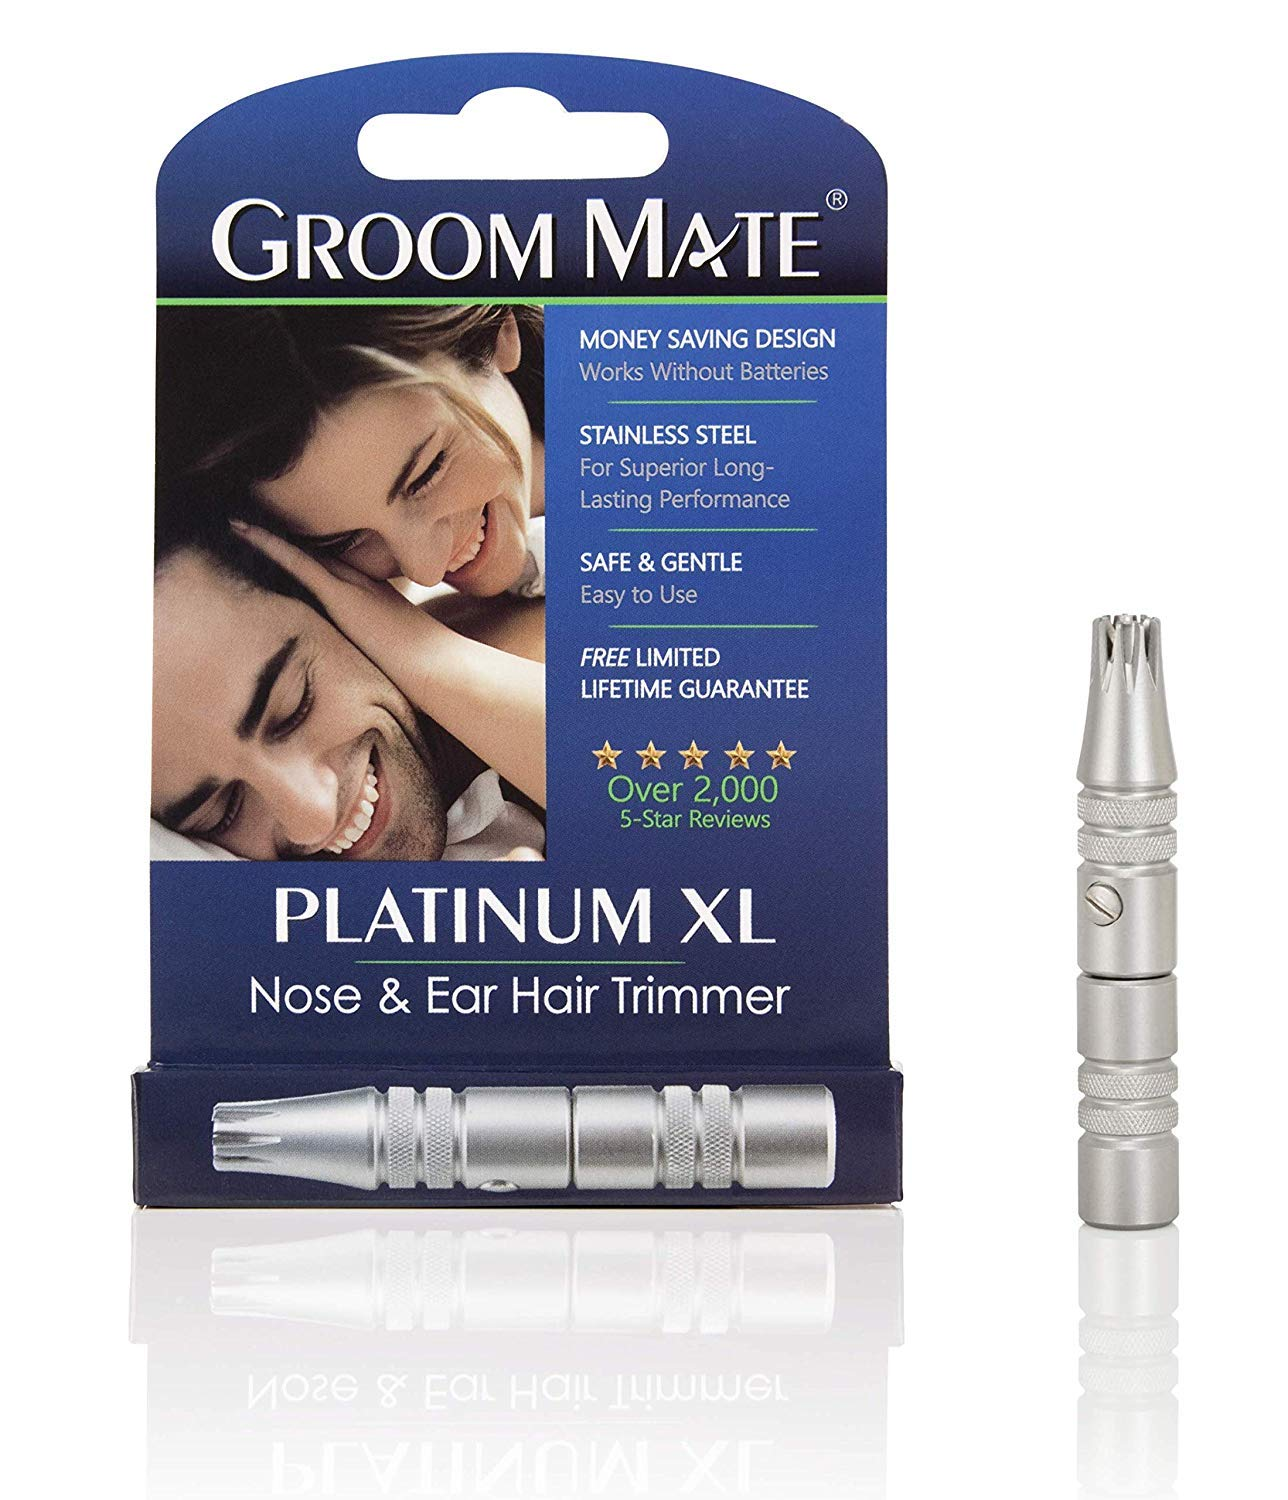 Groom Mate Platinum XL Nose & Ear Hair Trimmer by Groom Mate